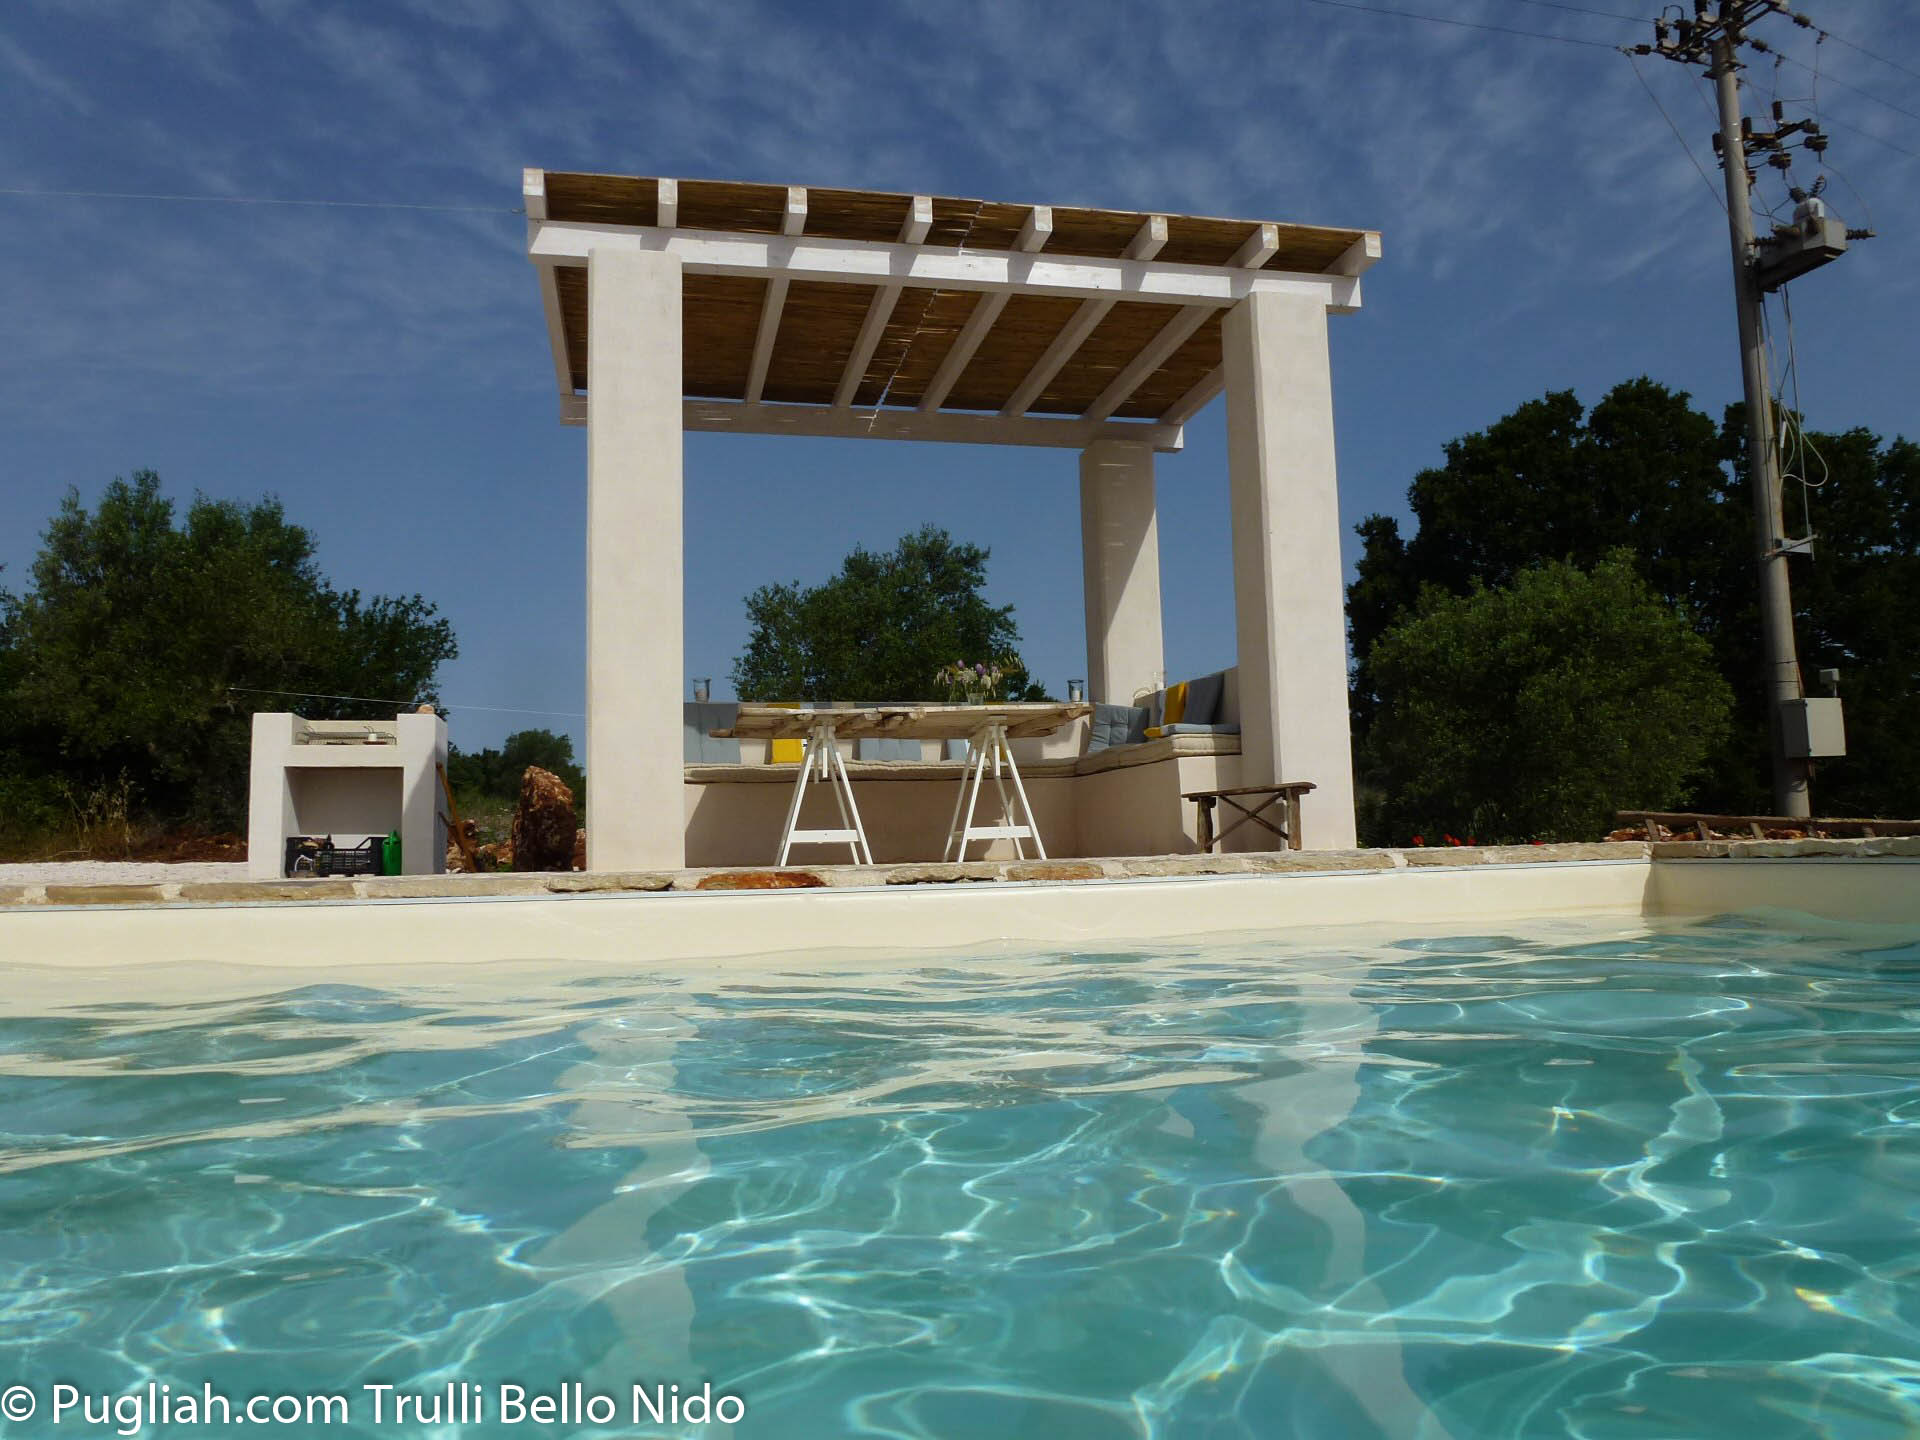 Schattige Pergola am Pool